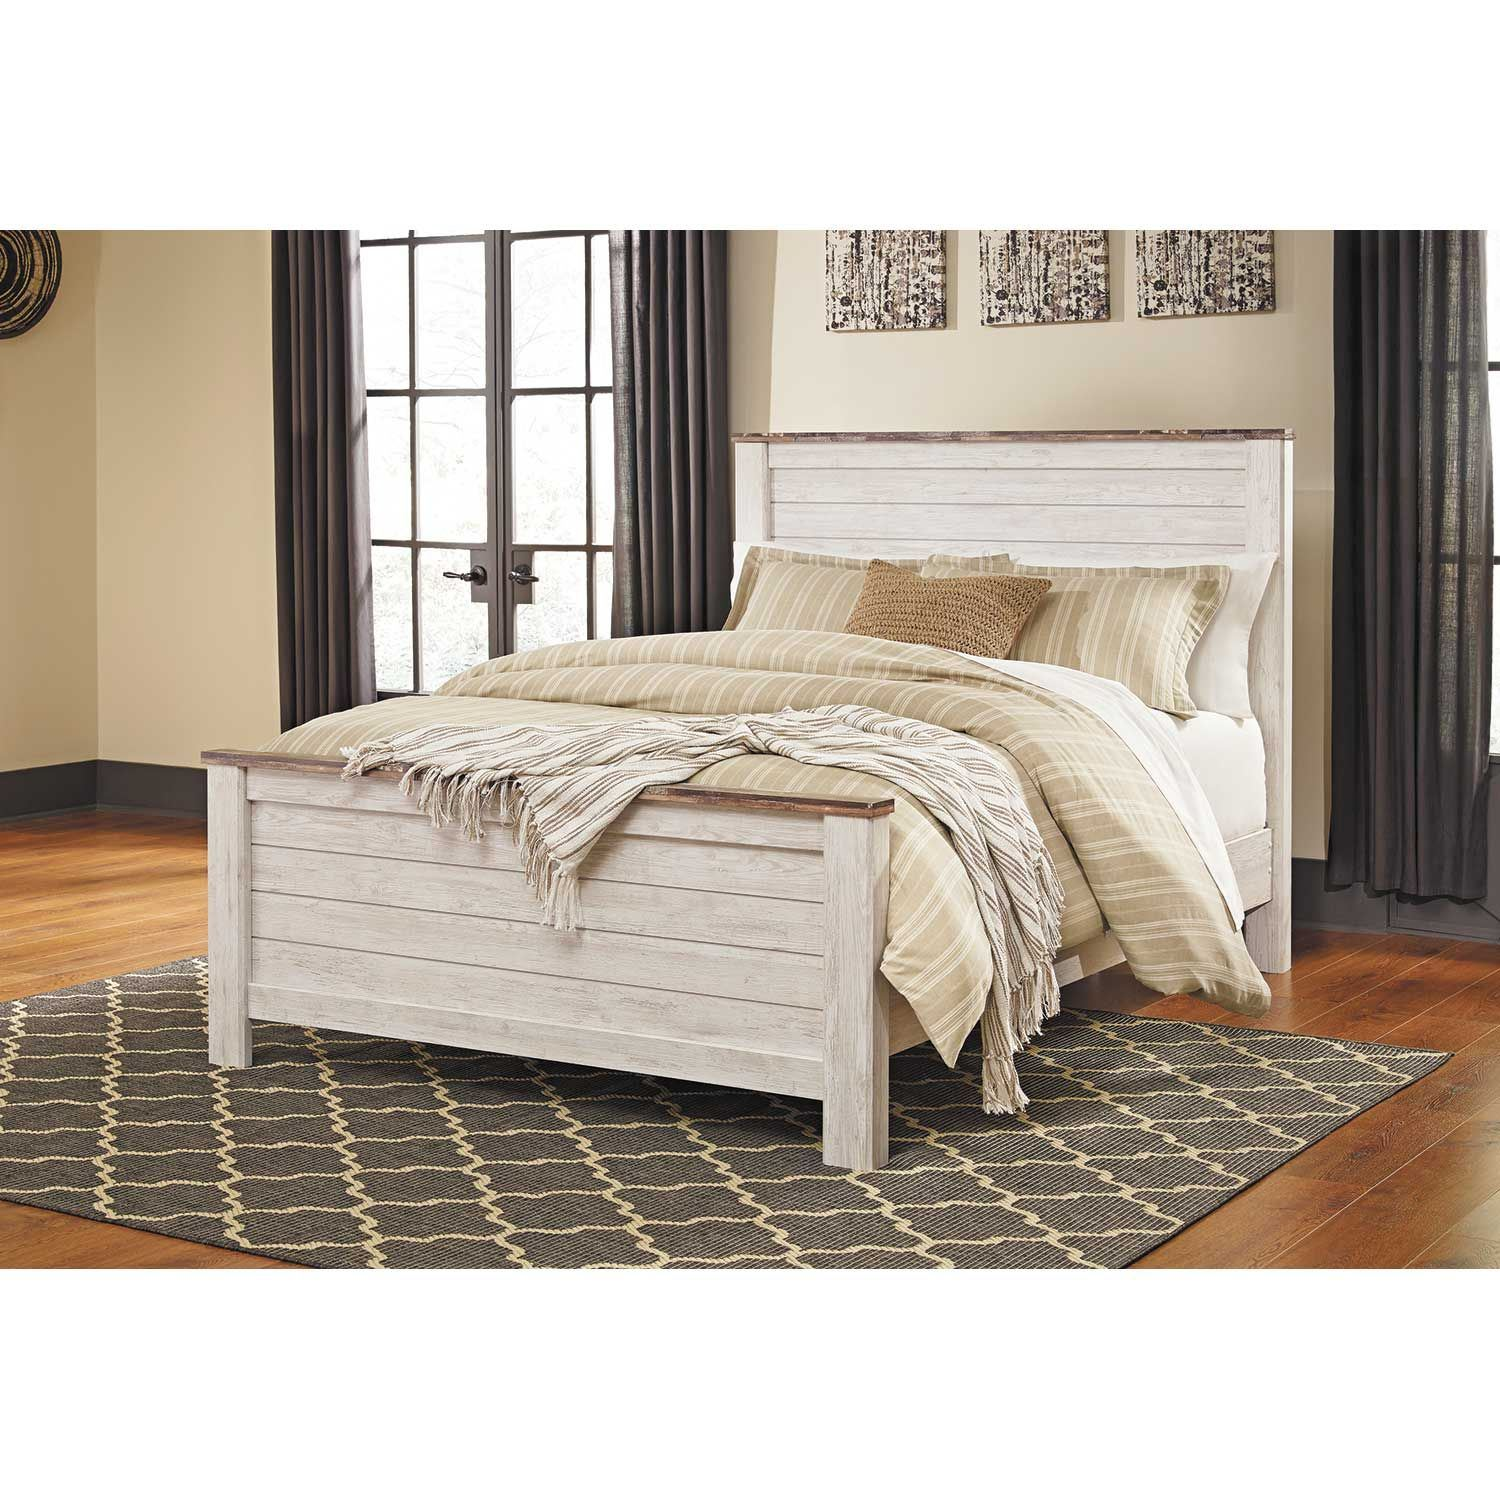 Wholesale Ashley Furniture: Willowton Queen Panel Bed B267-QPNLBED